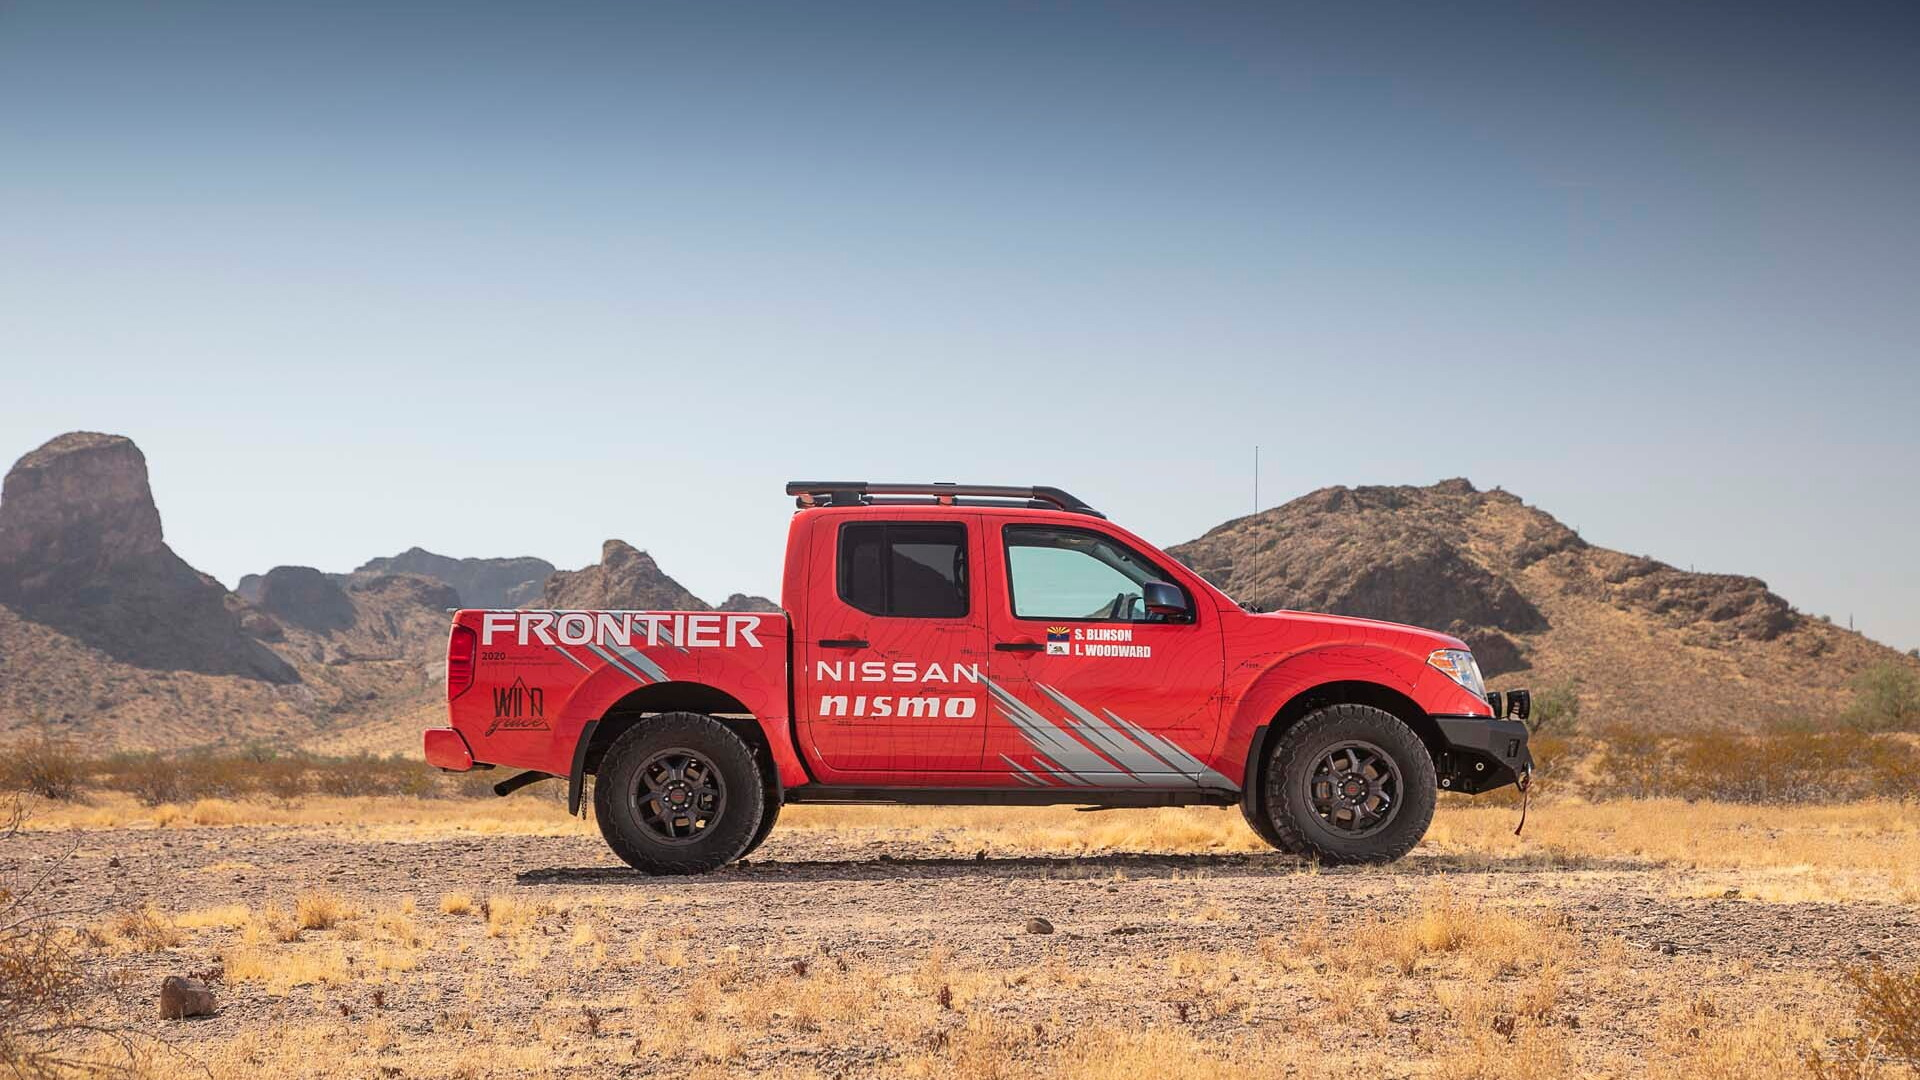 Team Wild Grace's 2020 Nissan Frontier with new Nismo off-road parts